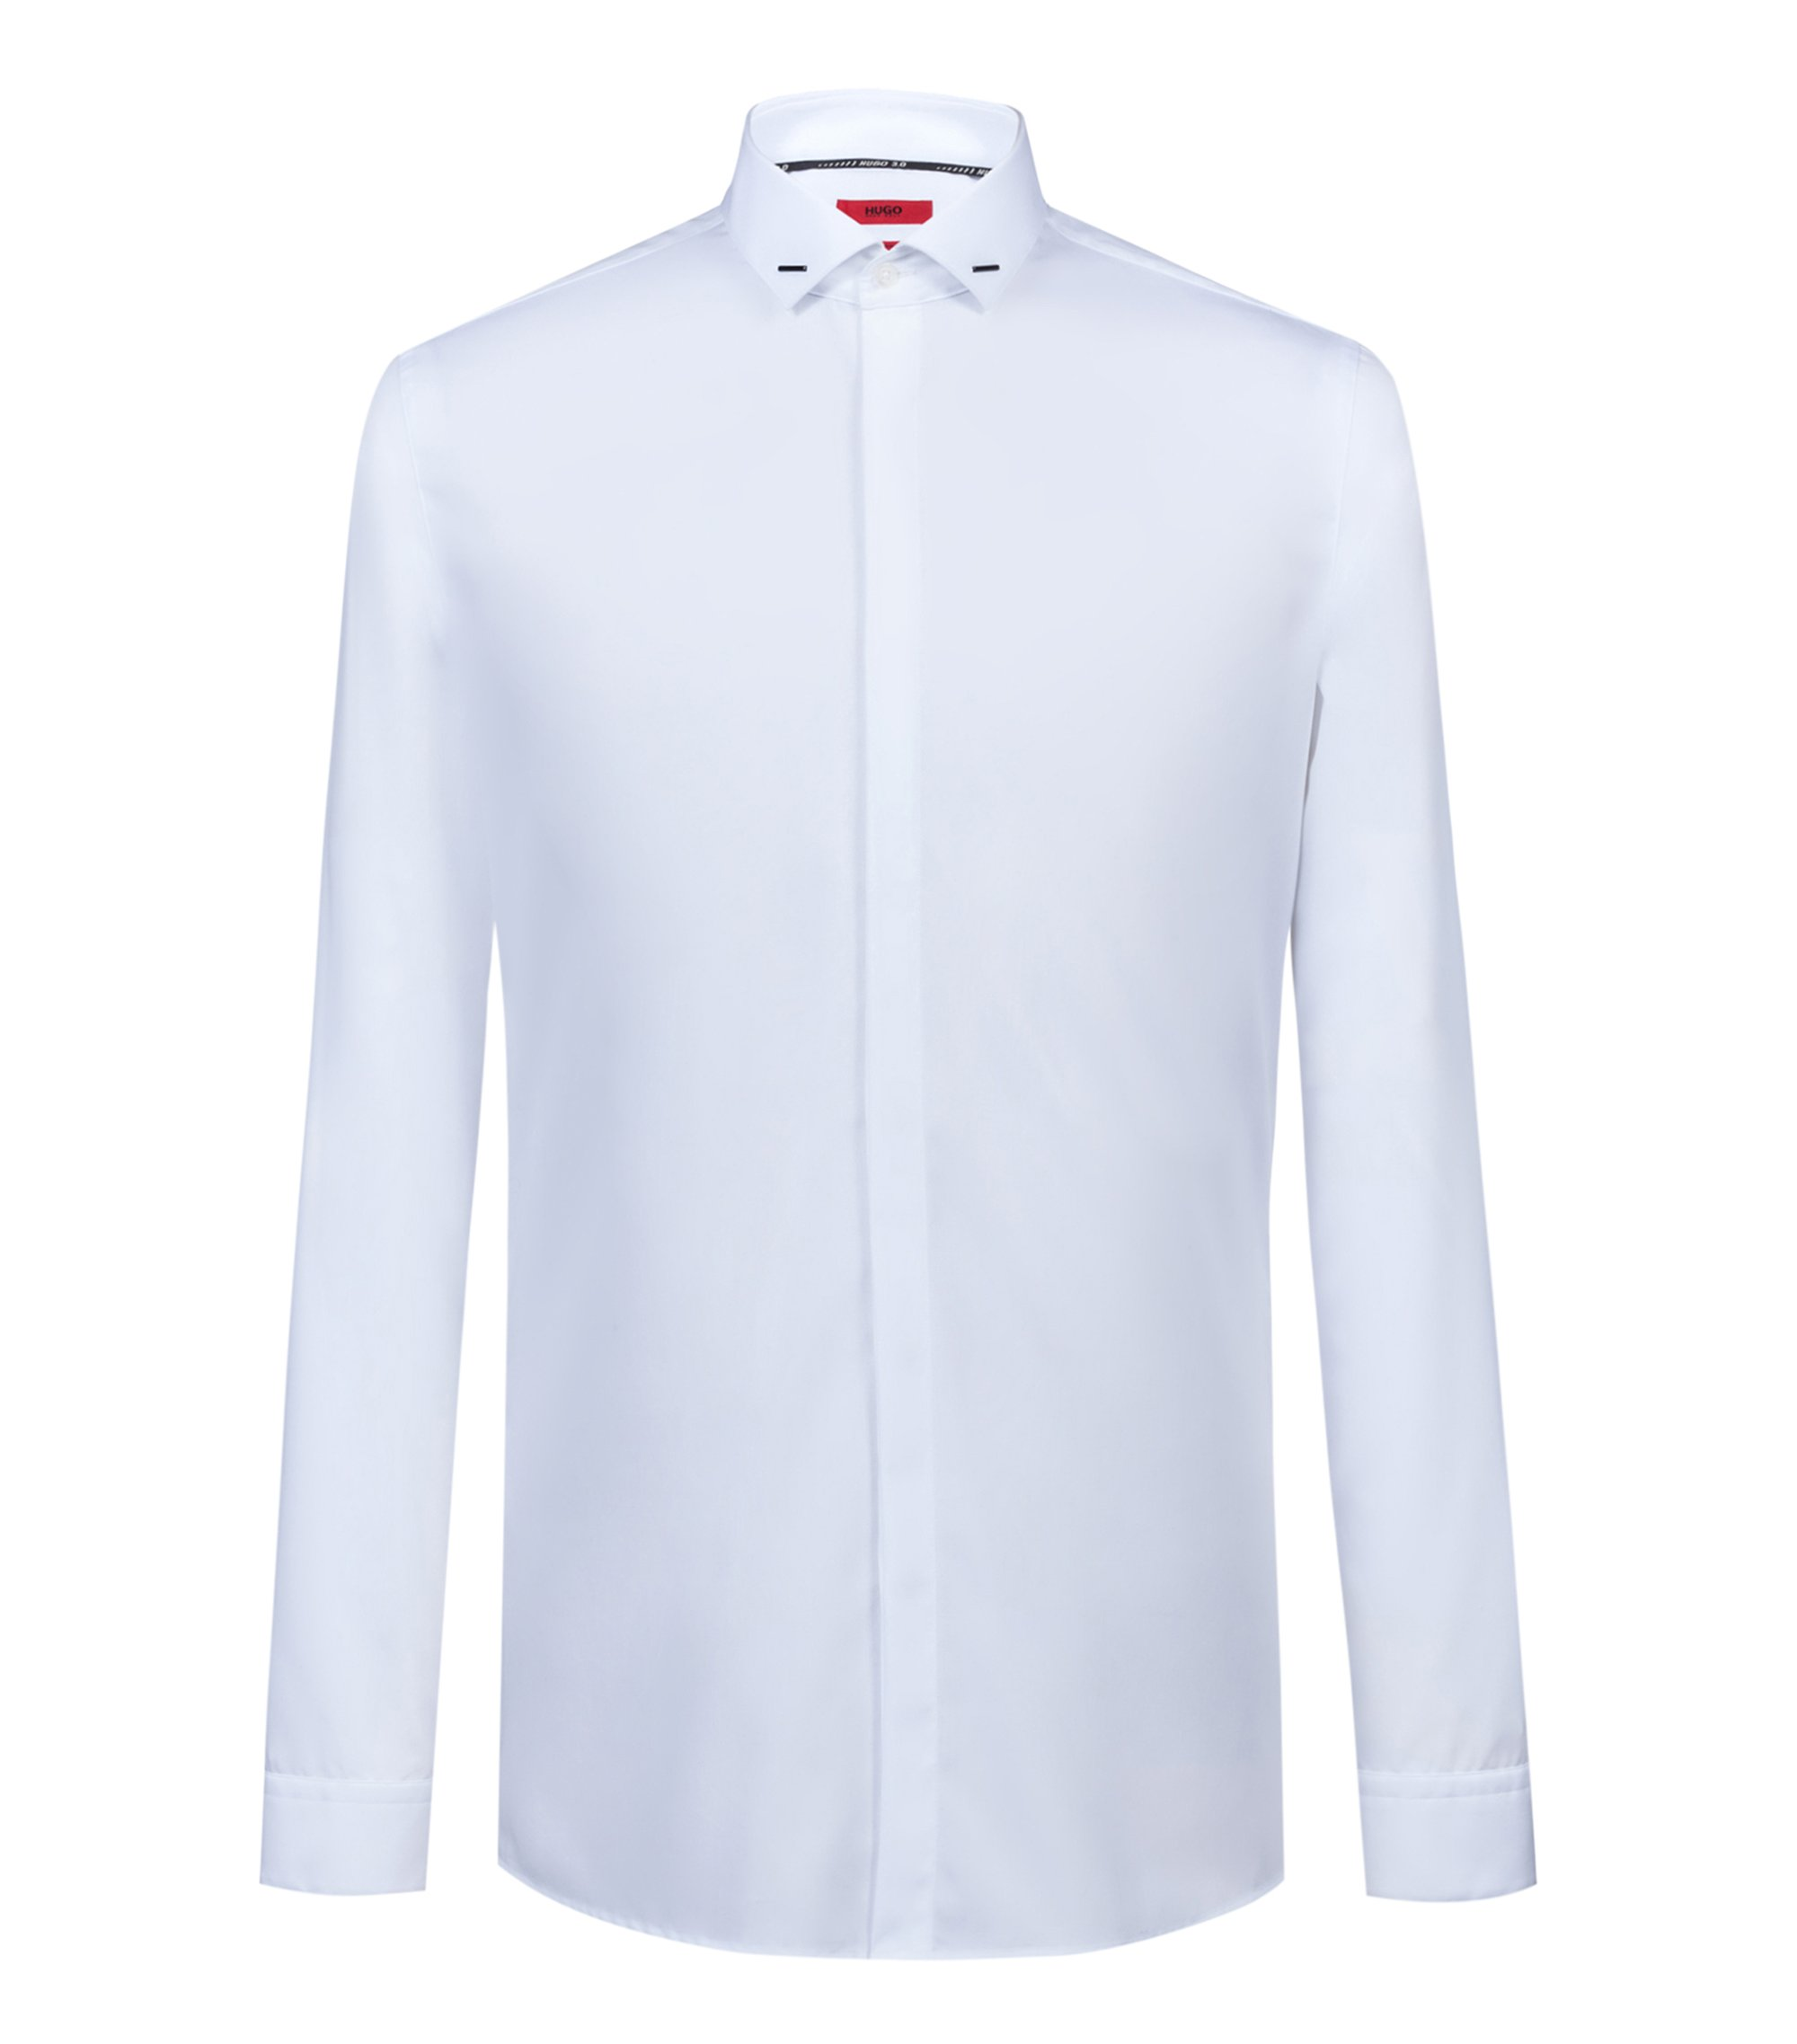 Bits & Bytes Capsule extra-slim-fit evening shirt in cotton, White